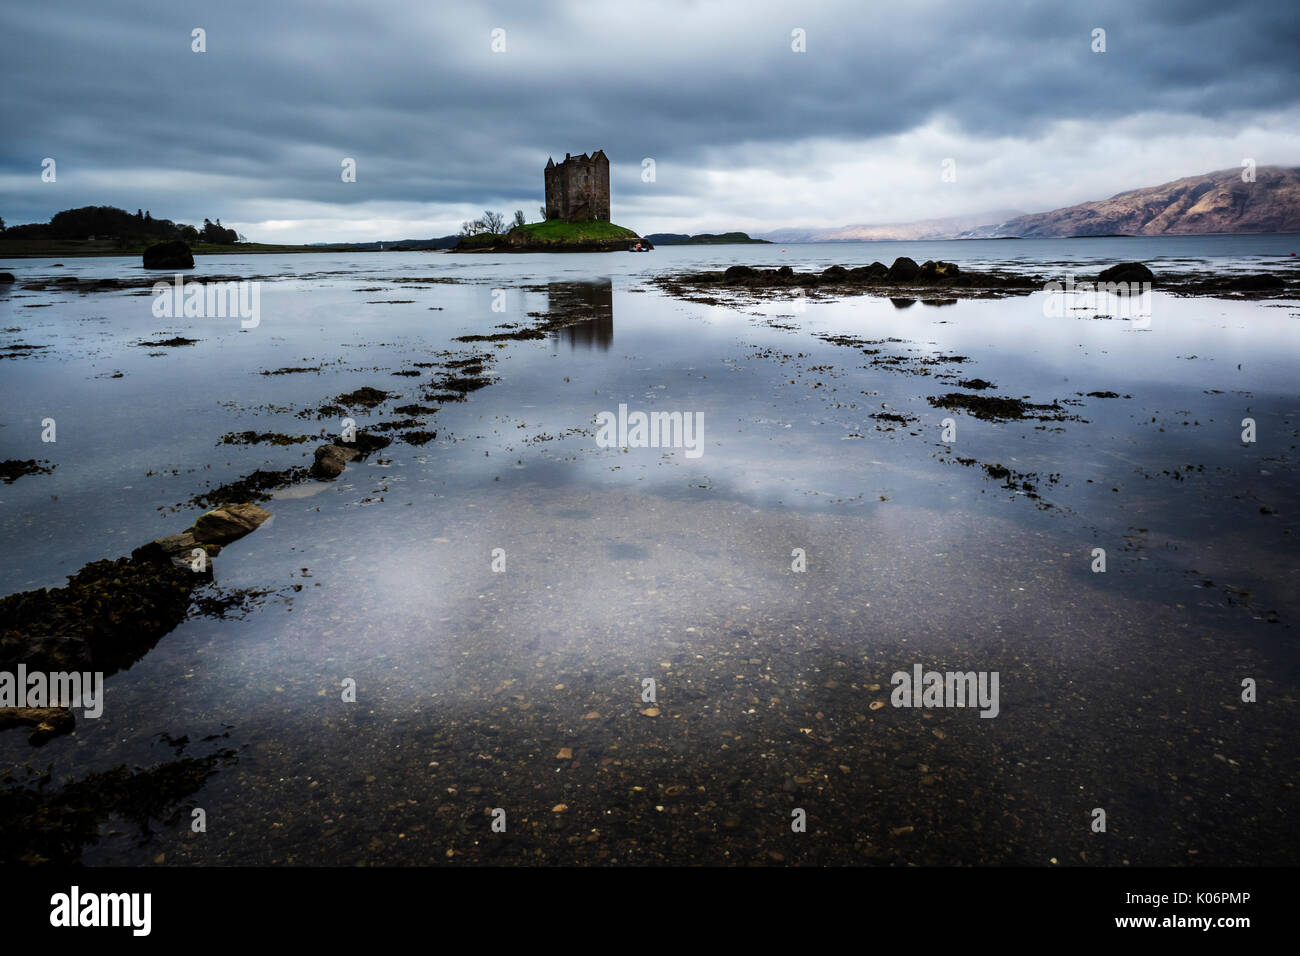 Castle Stalker (Caisteal an Stalcaire) a four-story tower house or keep picturesquely set on a tidal islet on Loch Laich, north of Oban, - Stock Image